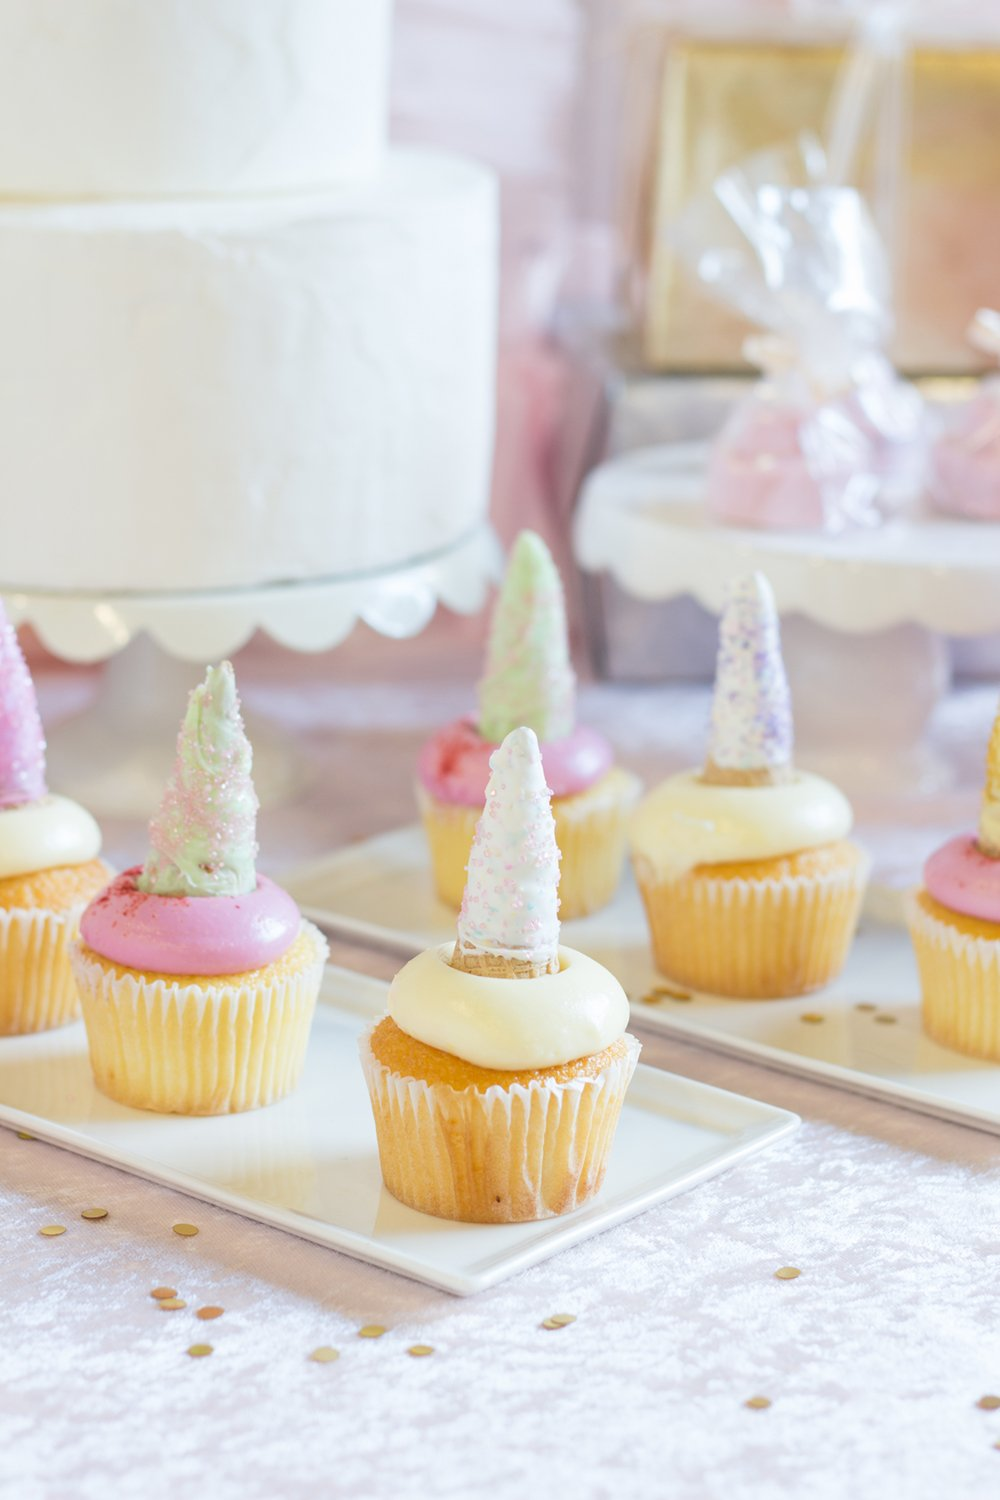 DIY Unicorn Horn Cupcake Toppers - Beau-coup.com